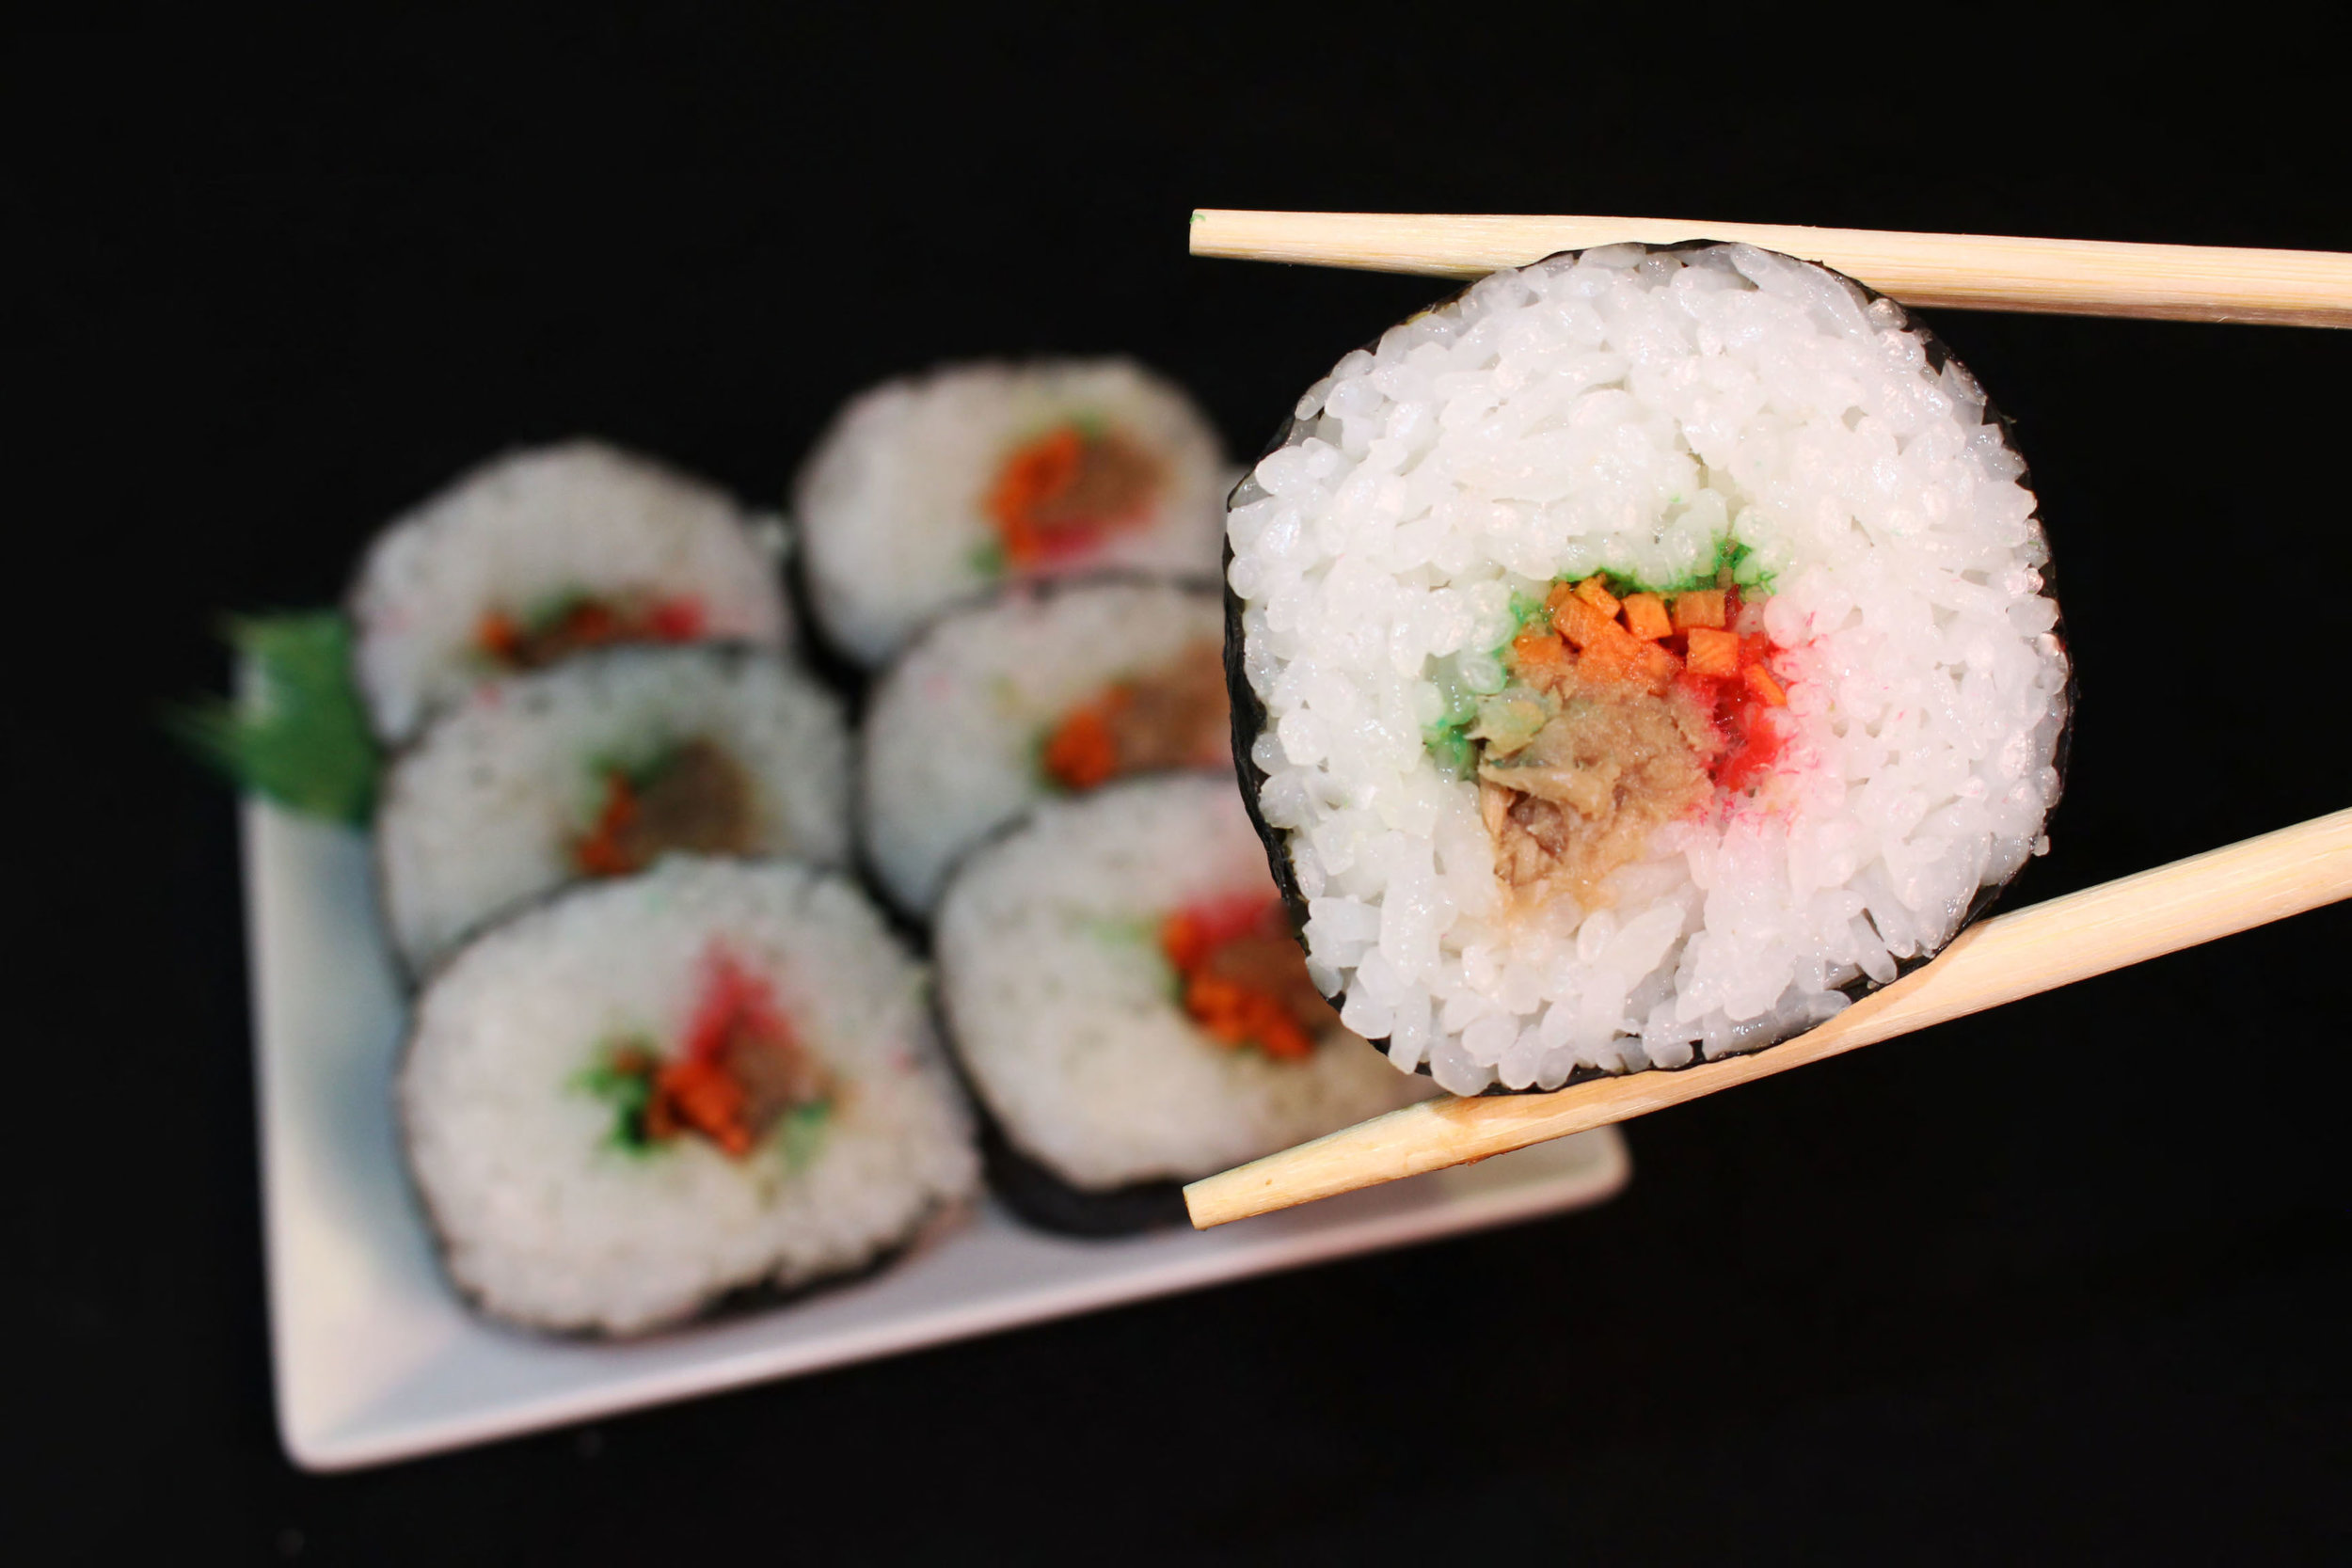 taniokas-food-02.jpg